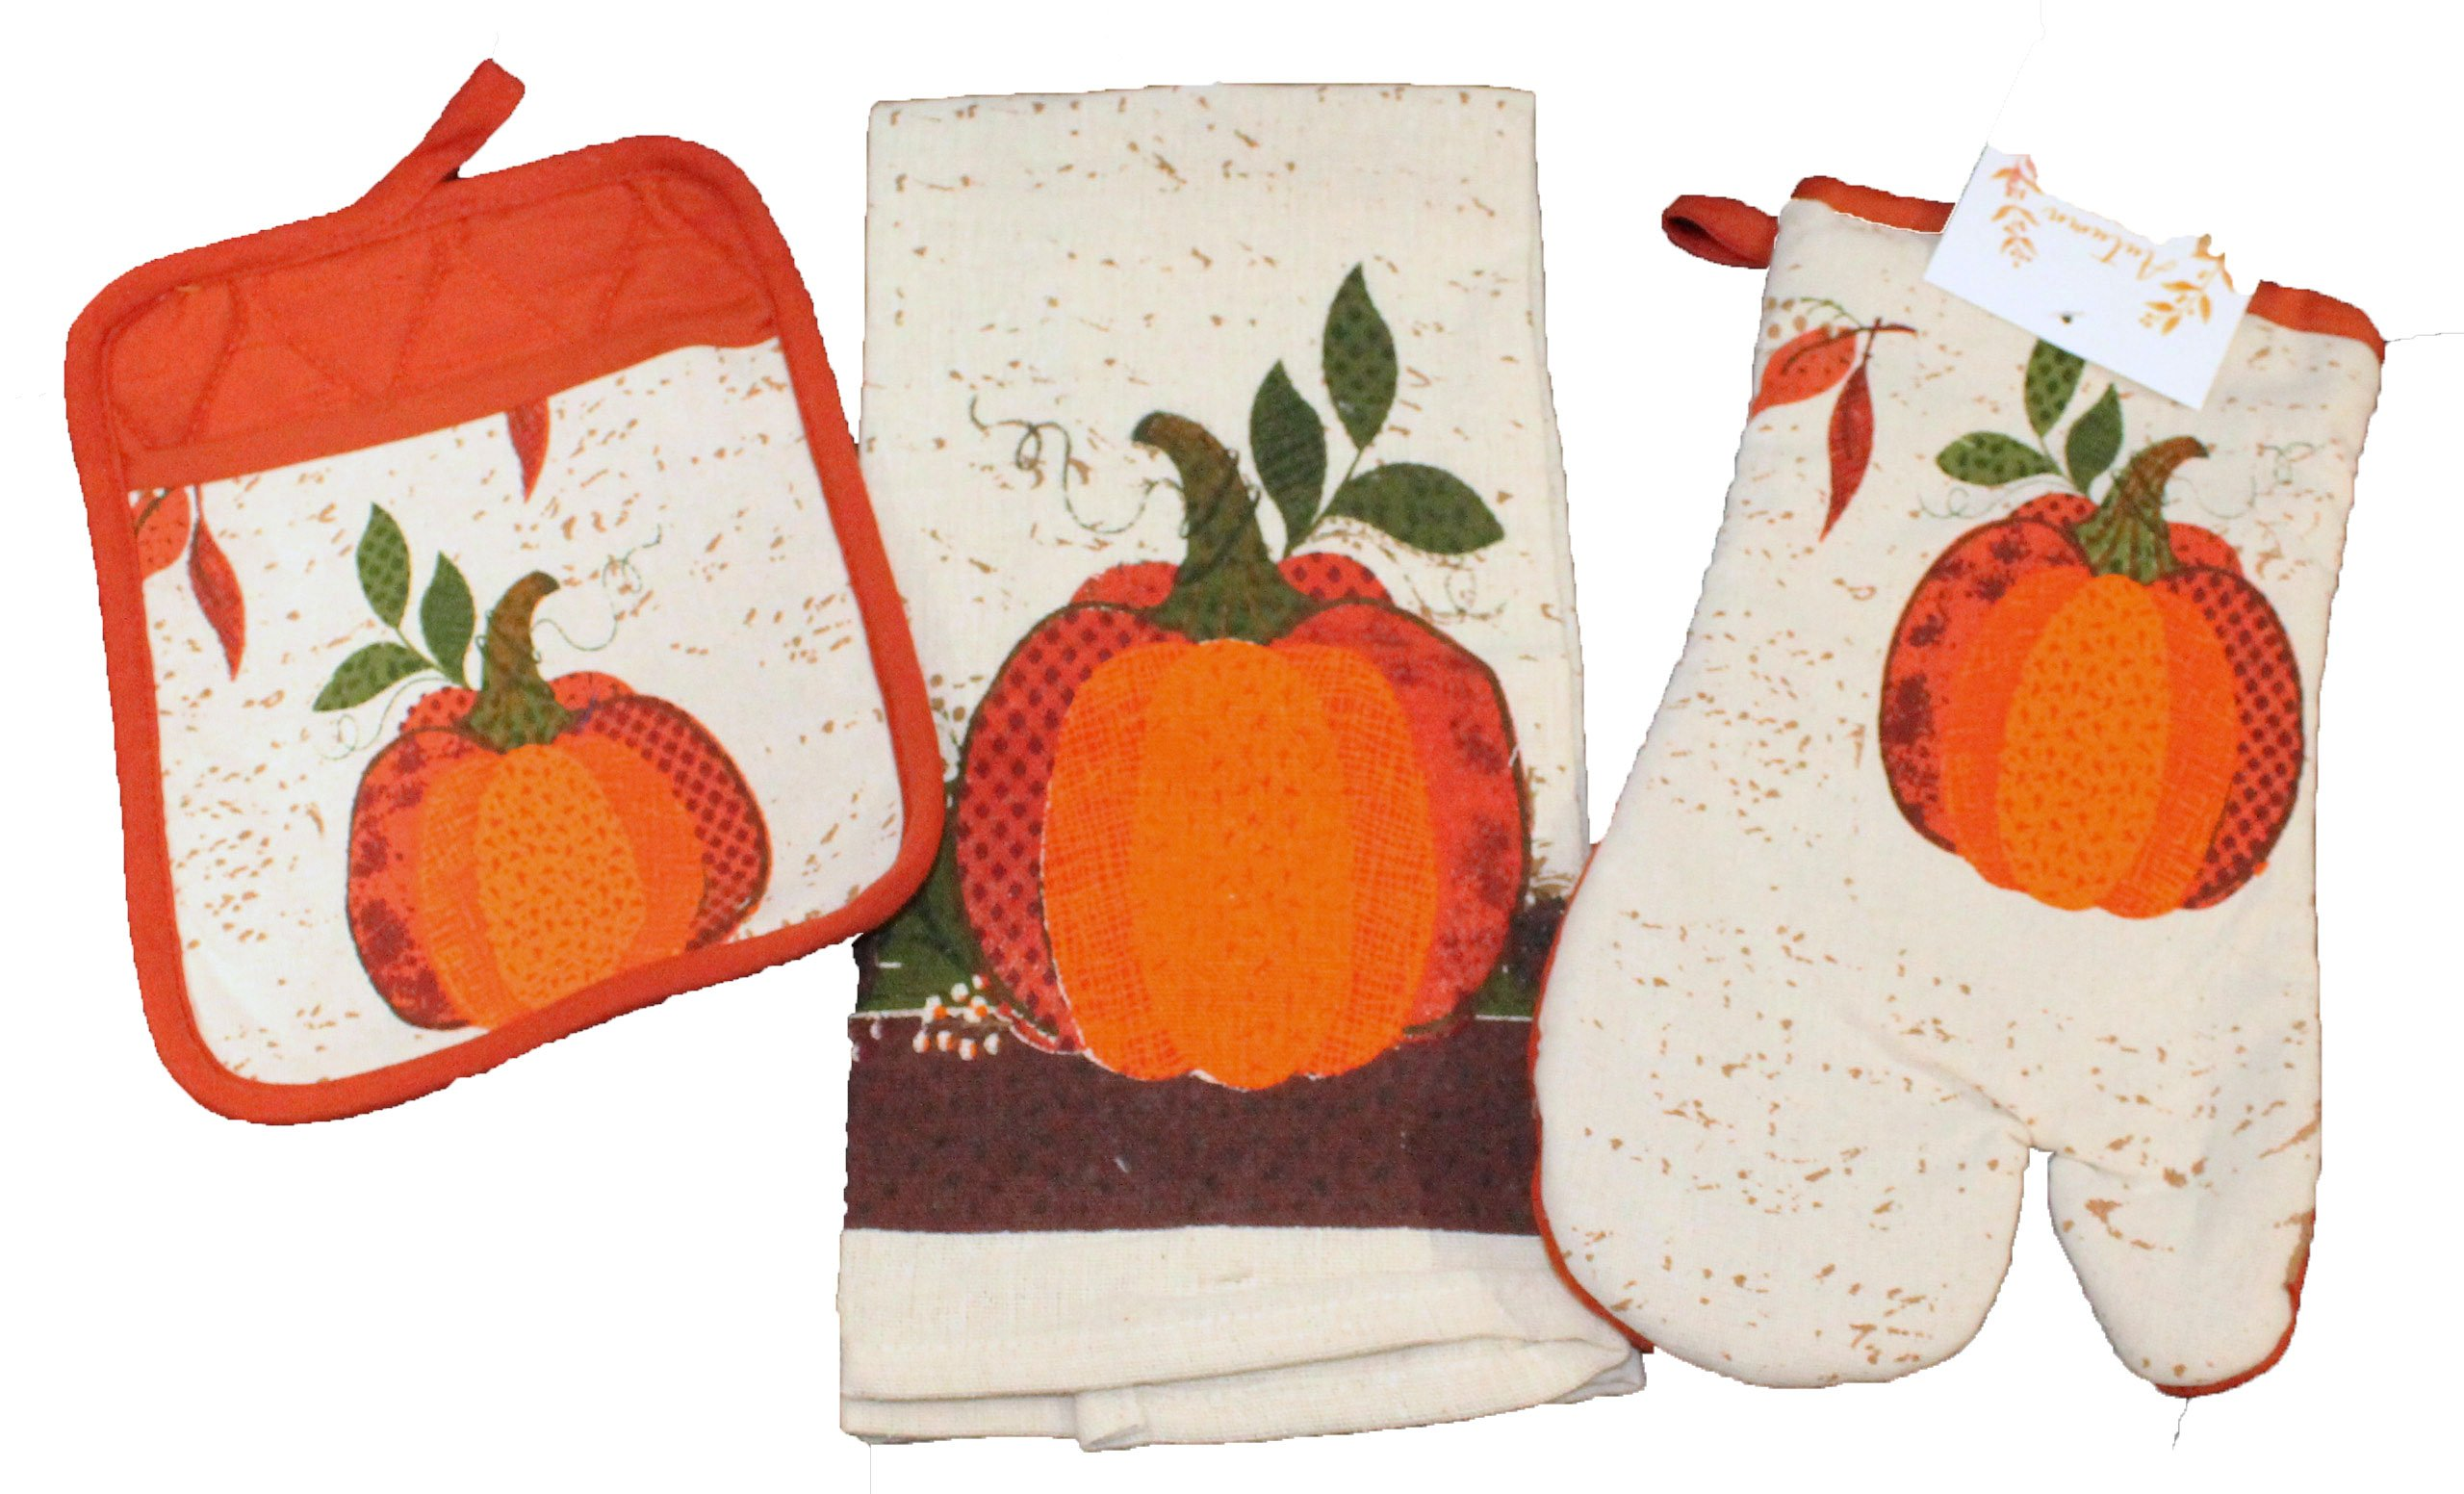 Twisted Anchor Trading Co Fall Harvest Pumpkin Oven Mitt, Pot Holder, and Kitchen Towel-3Pc Set - Comes in an organza bag so it's ready for giving!